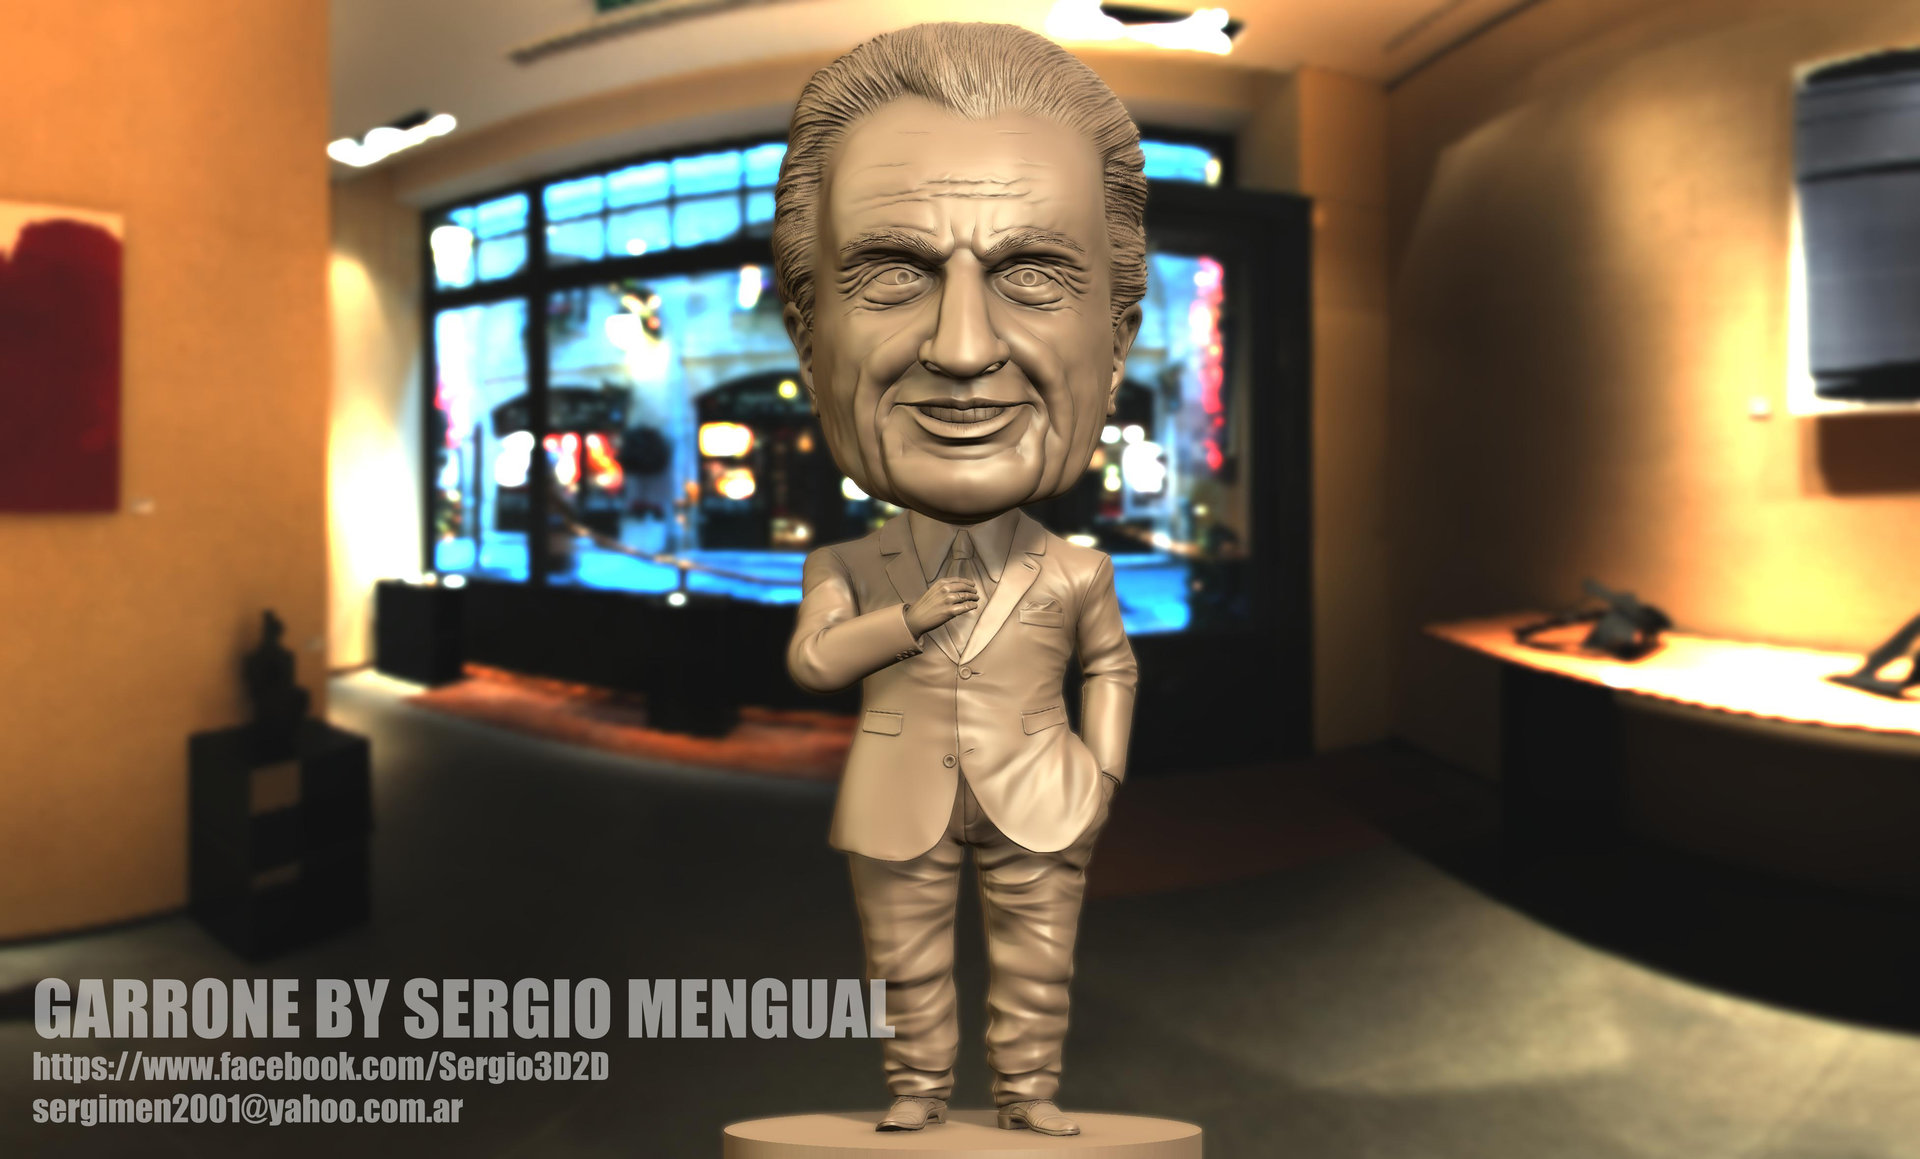 Sergio gabriel mengual garrone finish1publish